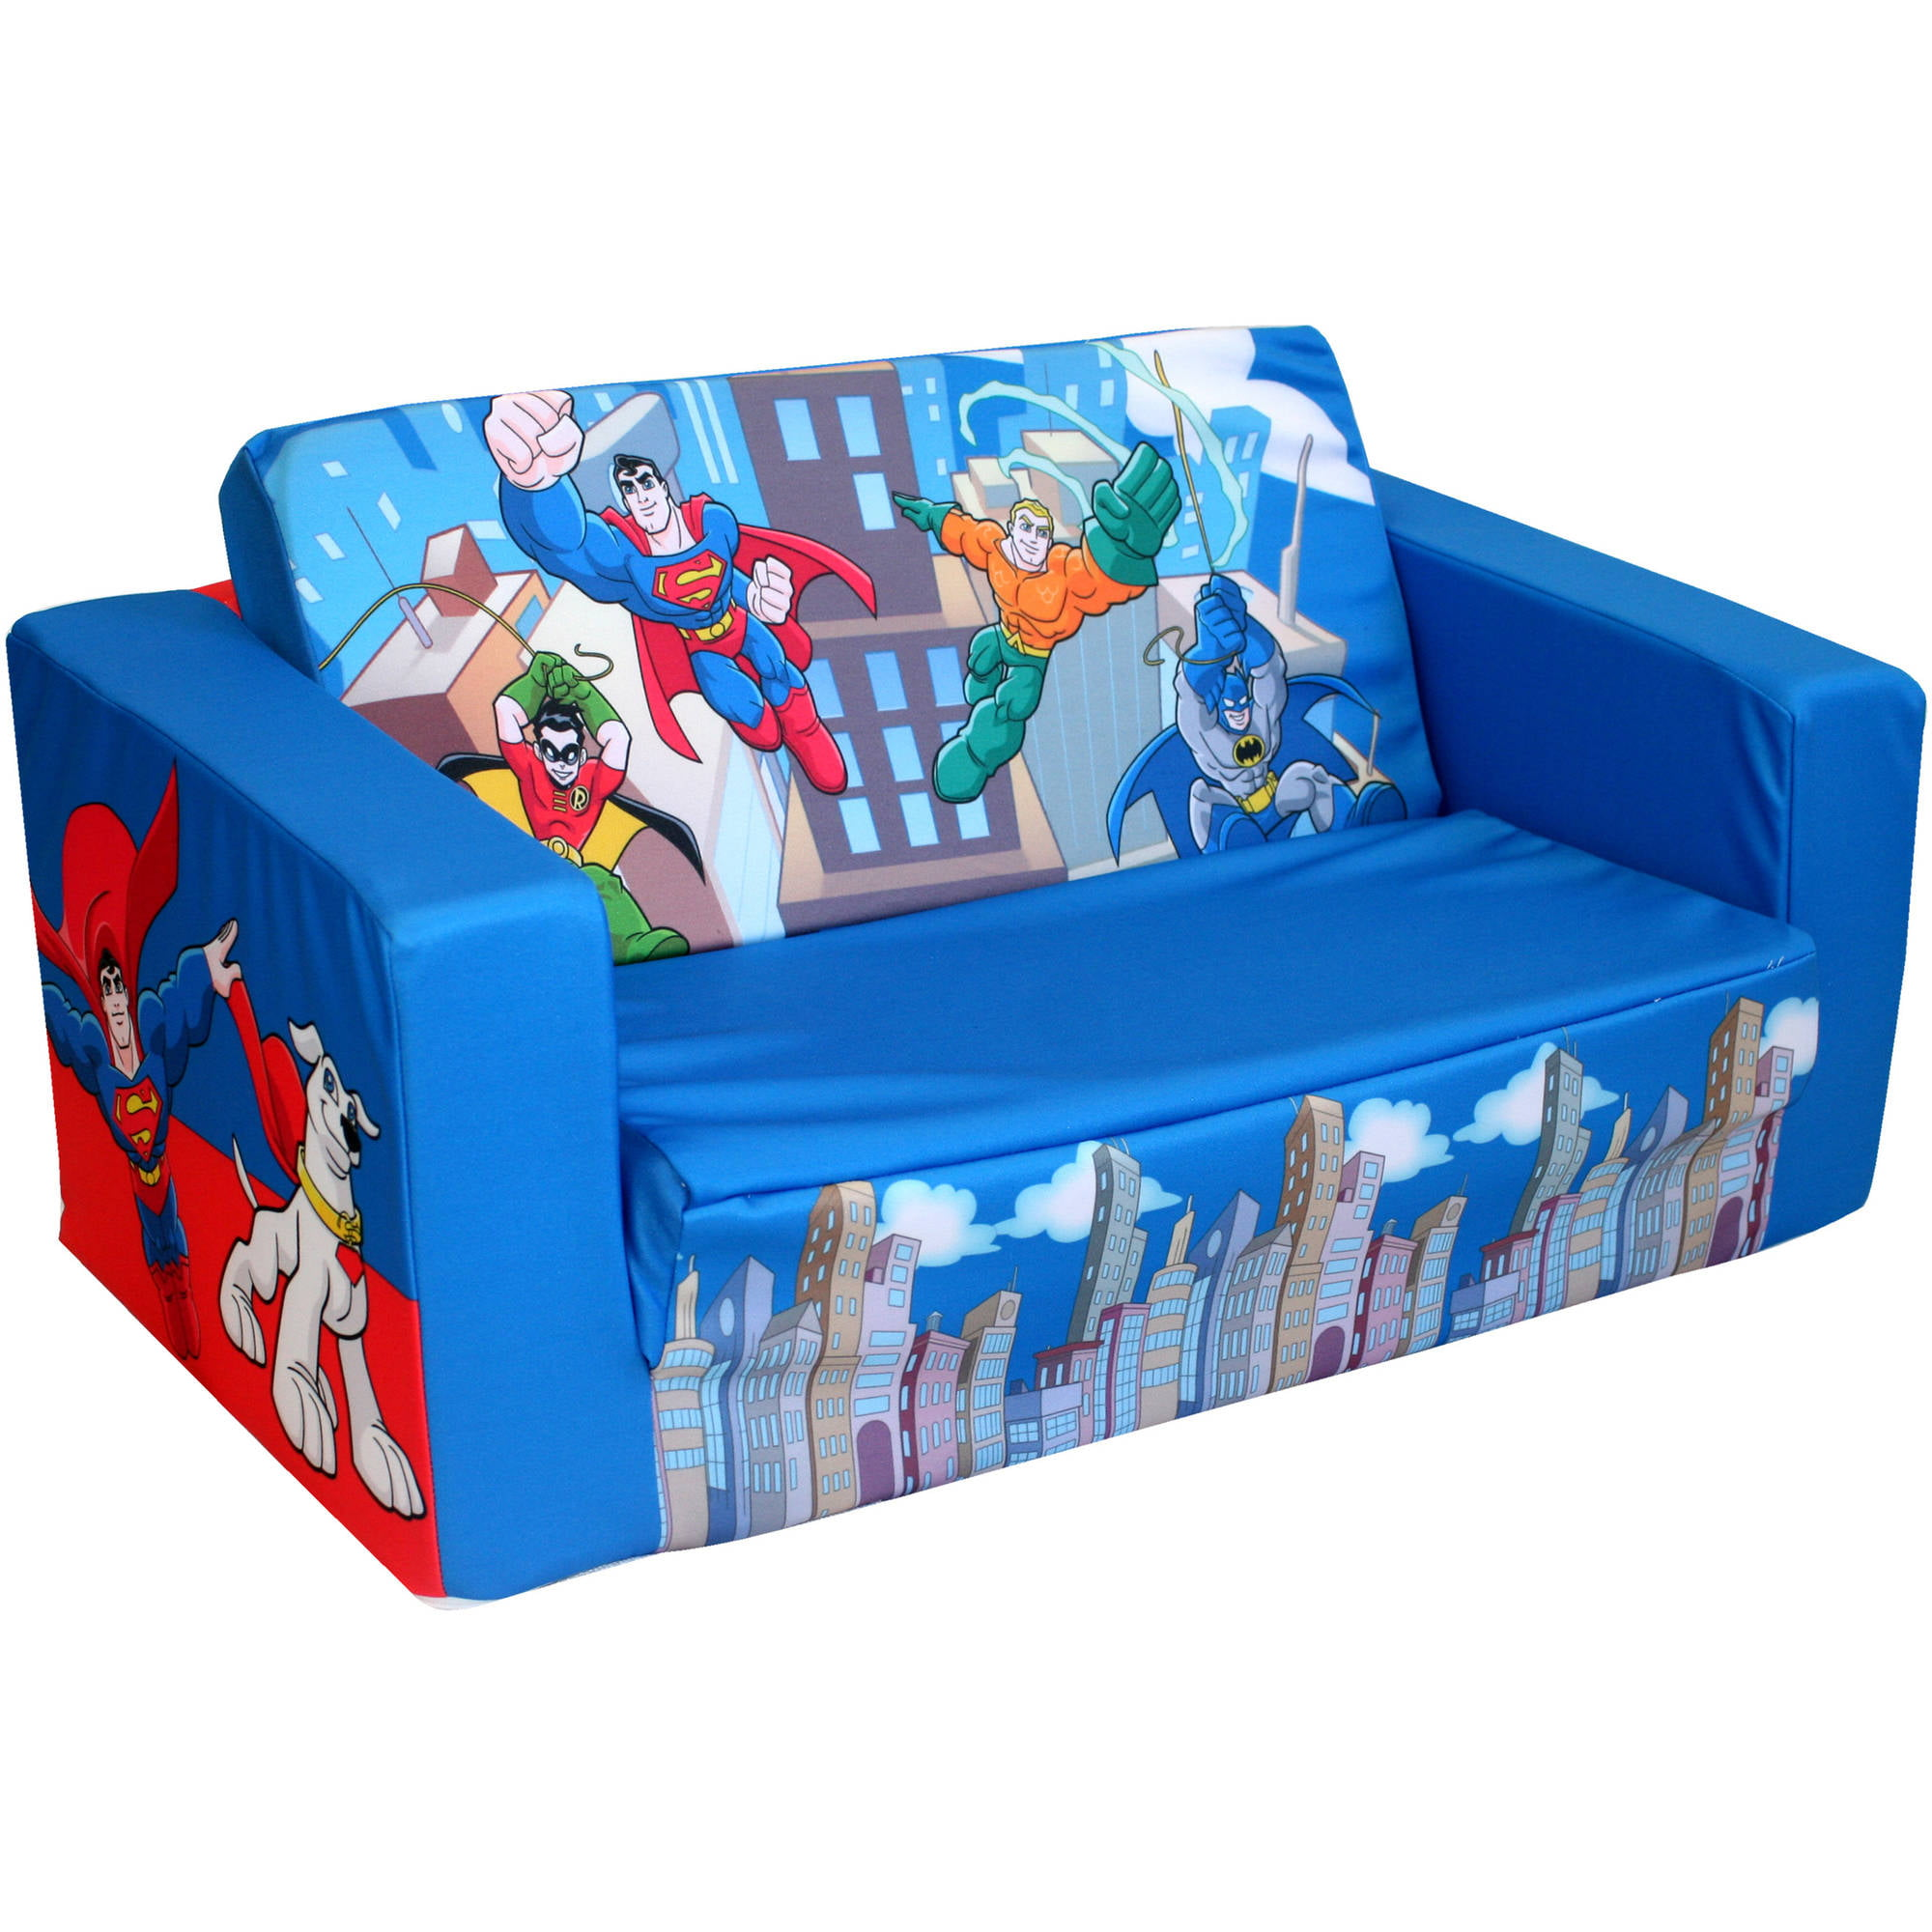 Flip sofas marshmallow furniture children s 2 in 1 flip open foam sofa thesofa Toddler flip out sofa couch bed